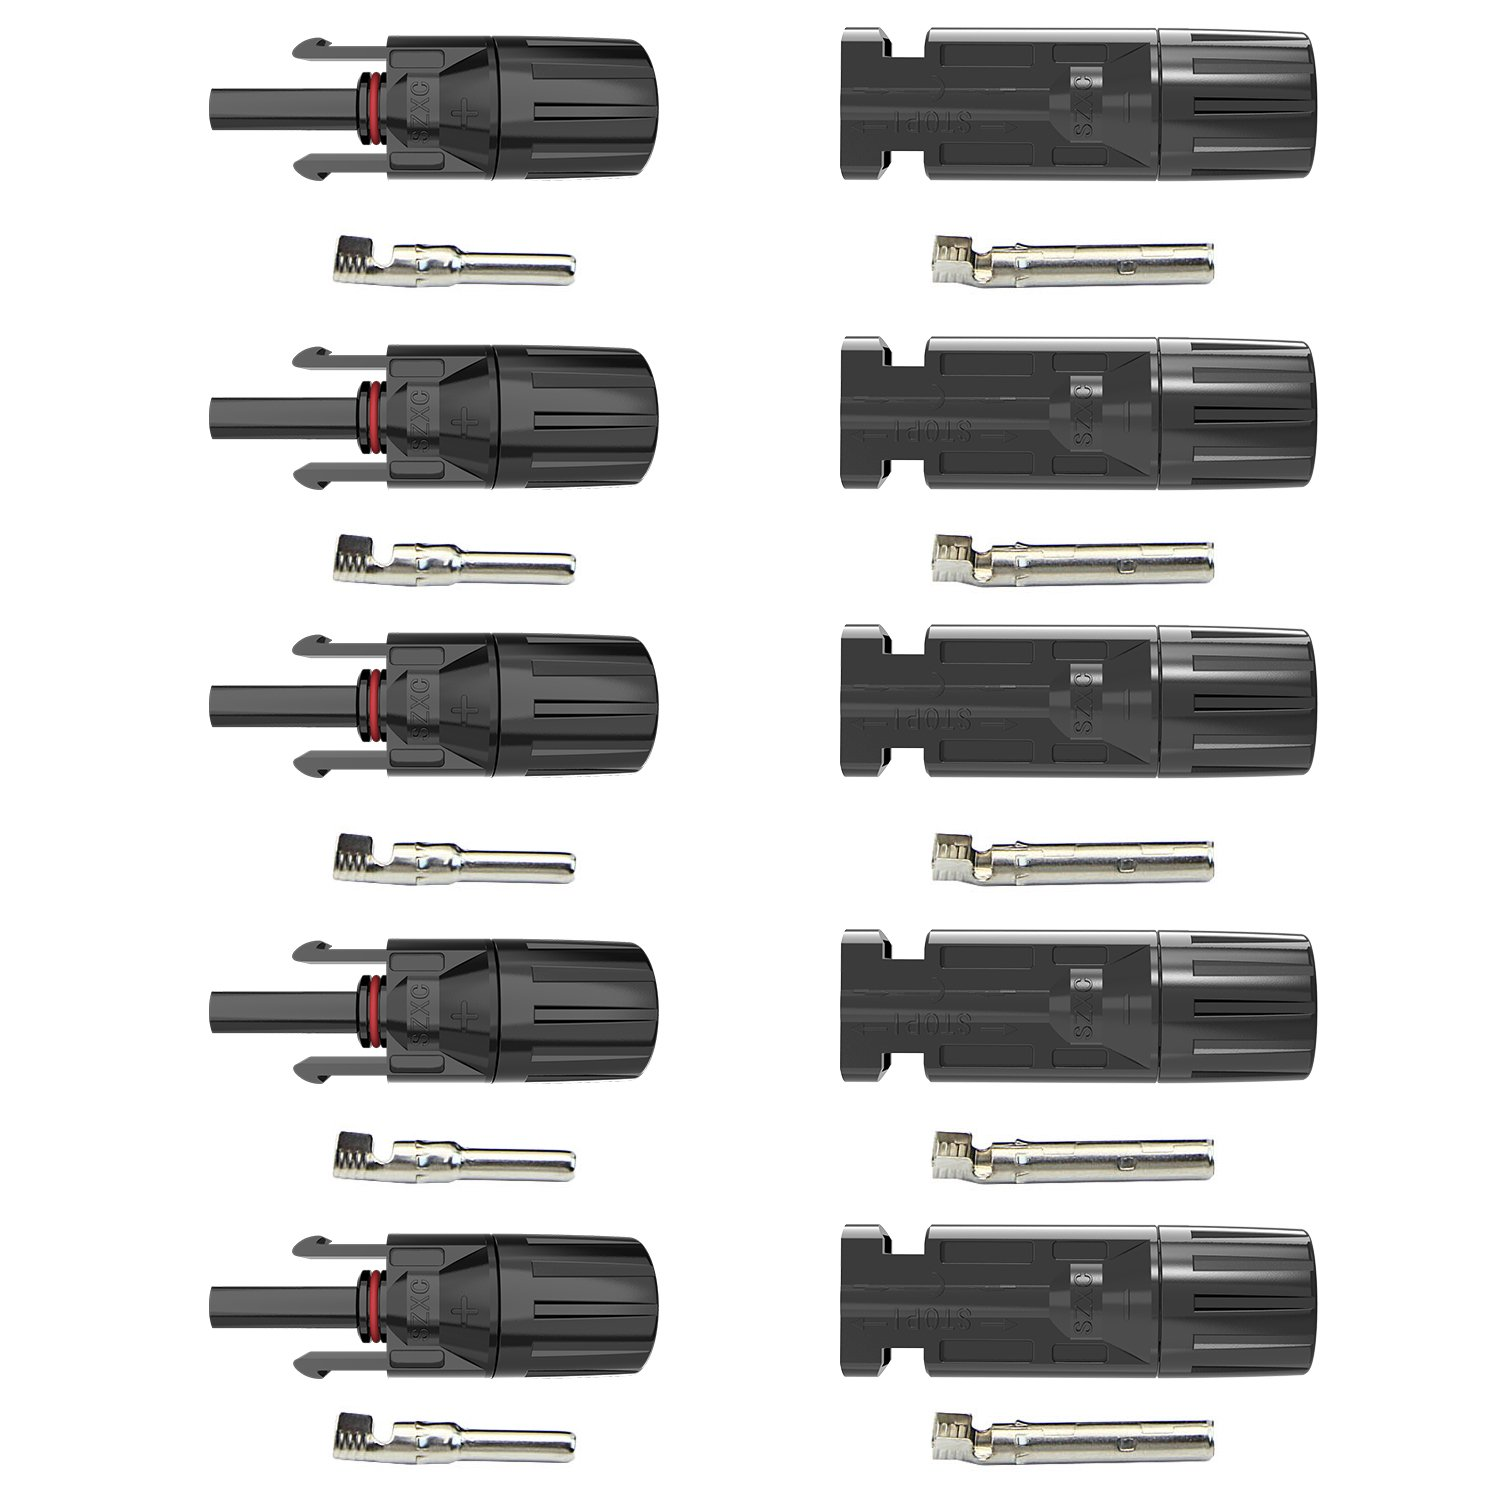 ALLPOWERS MC4 Connector Assembly Tool fü r PV-Kabel, Solarpanel, Kabel (1 Paar) AP-OT-004-BLA